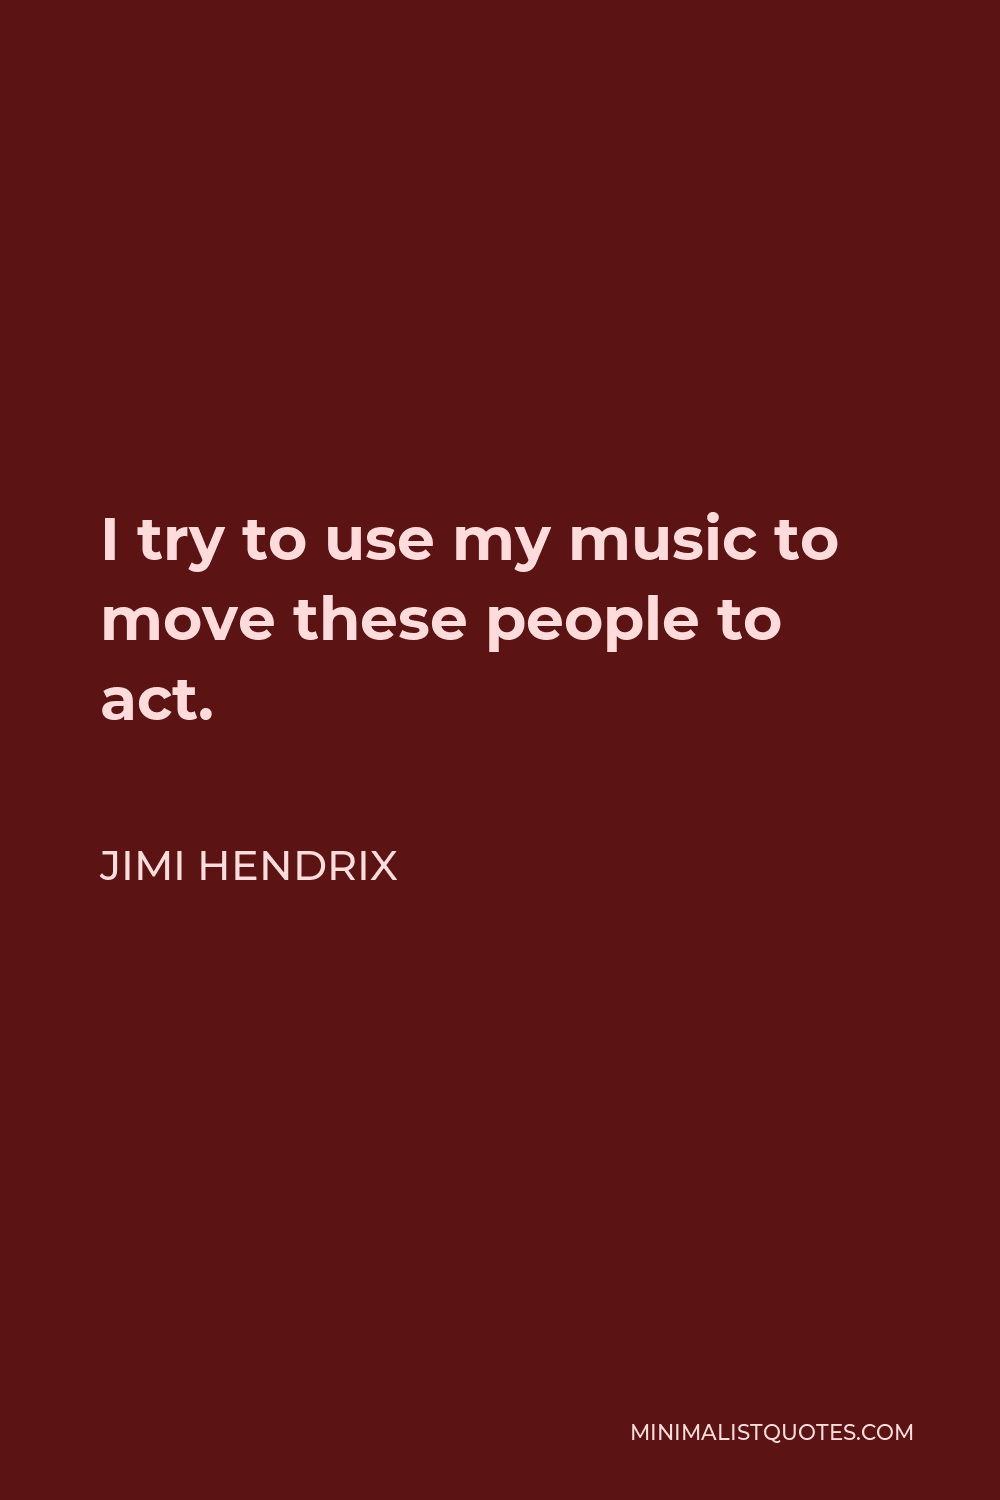 Jimi Hendrix Quote - I try to use my music to move these people to act.